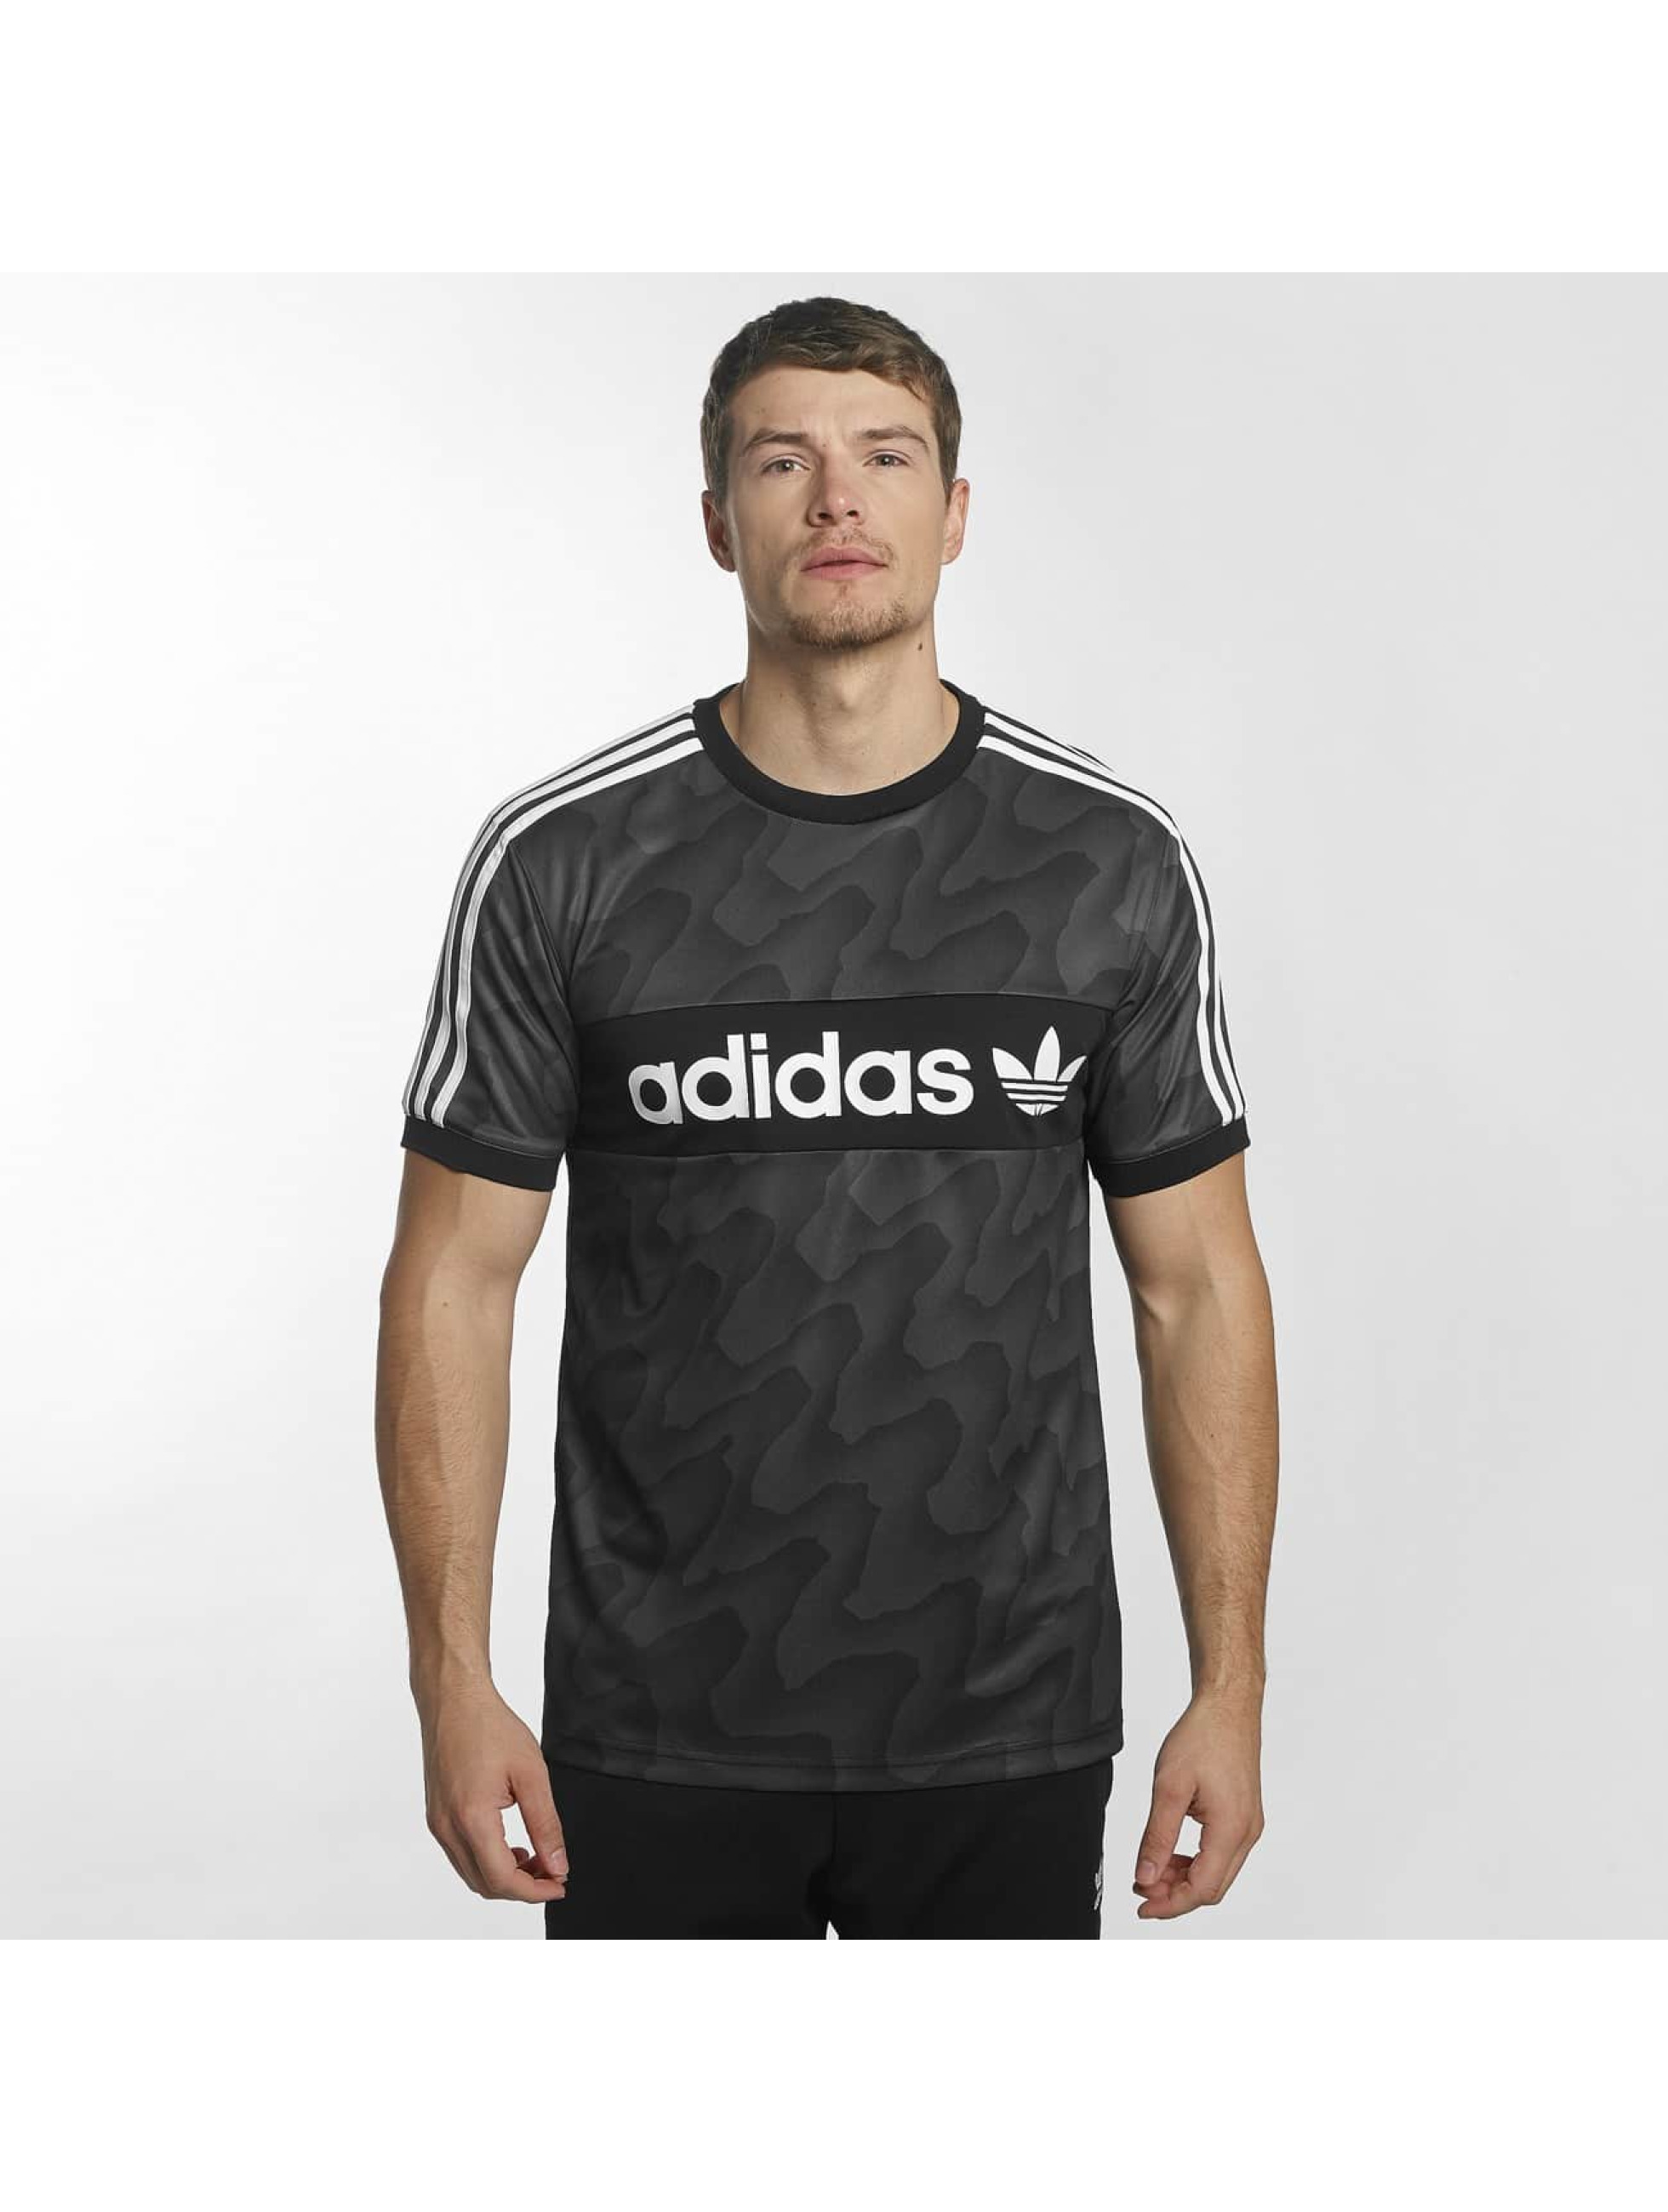 adidas T-shirt Clima Club nero